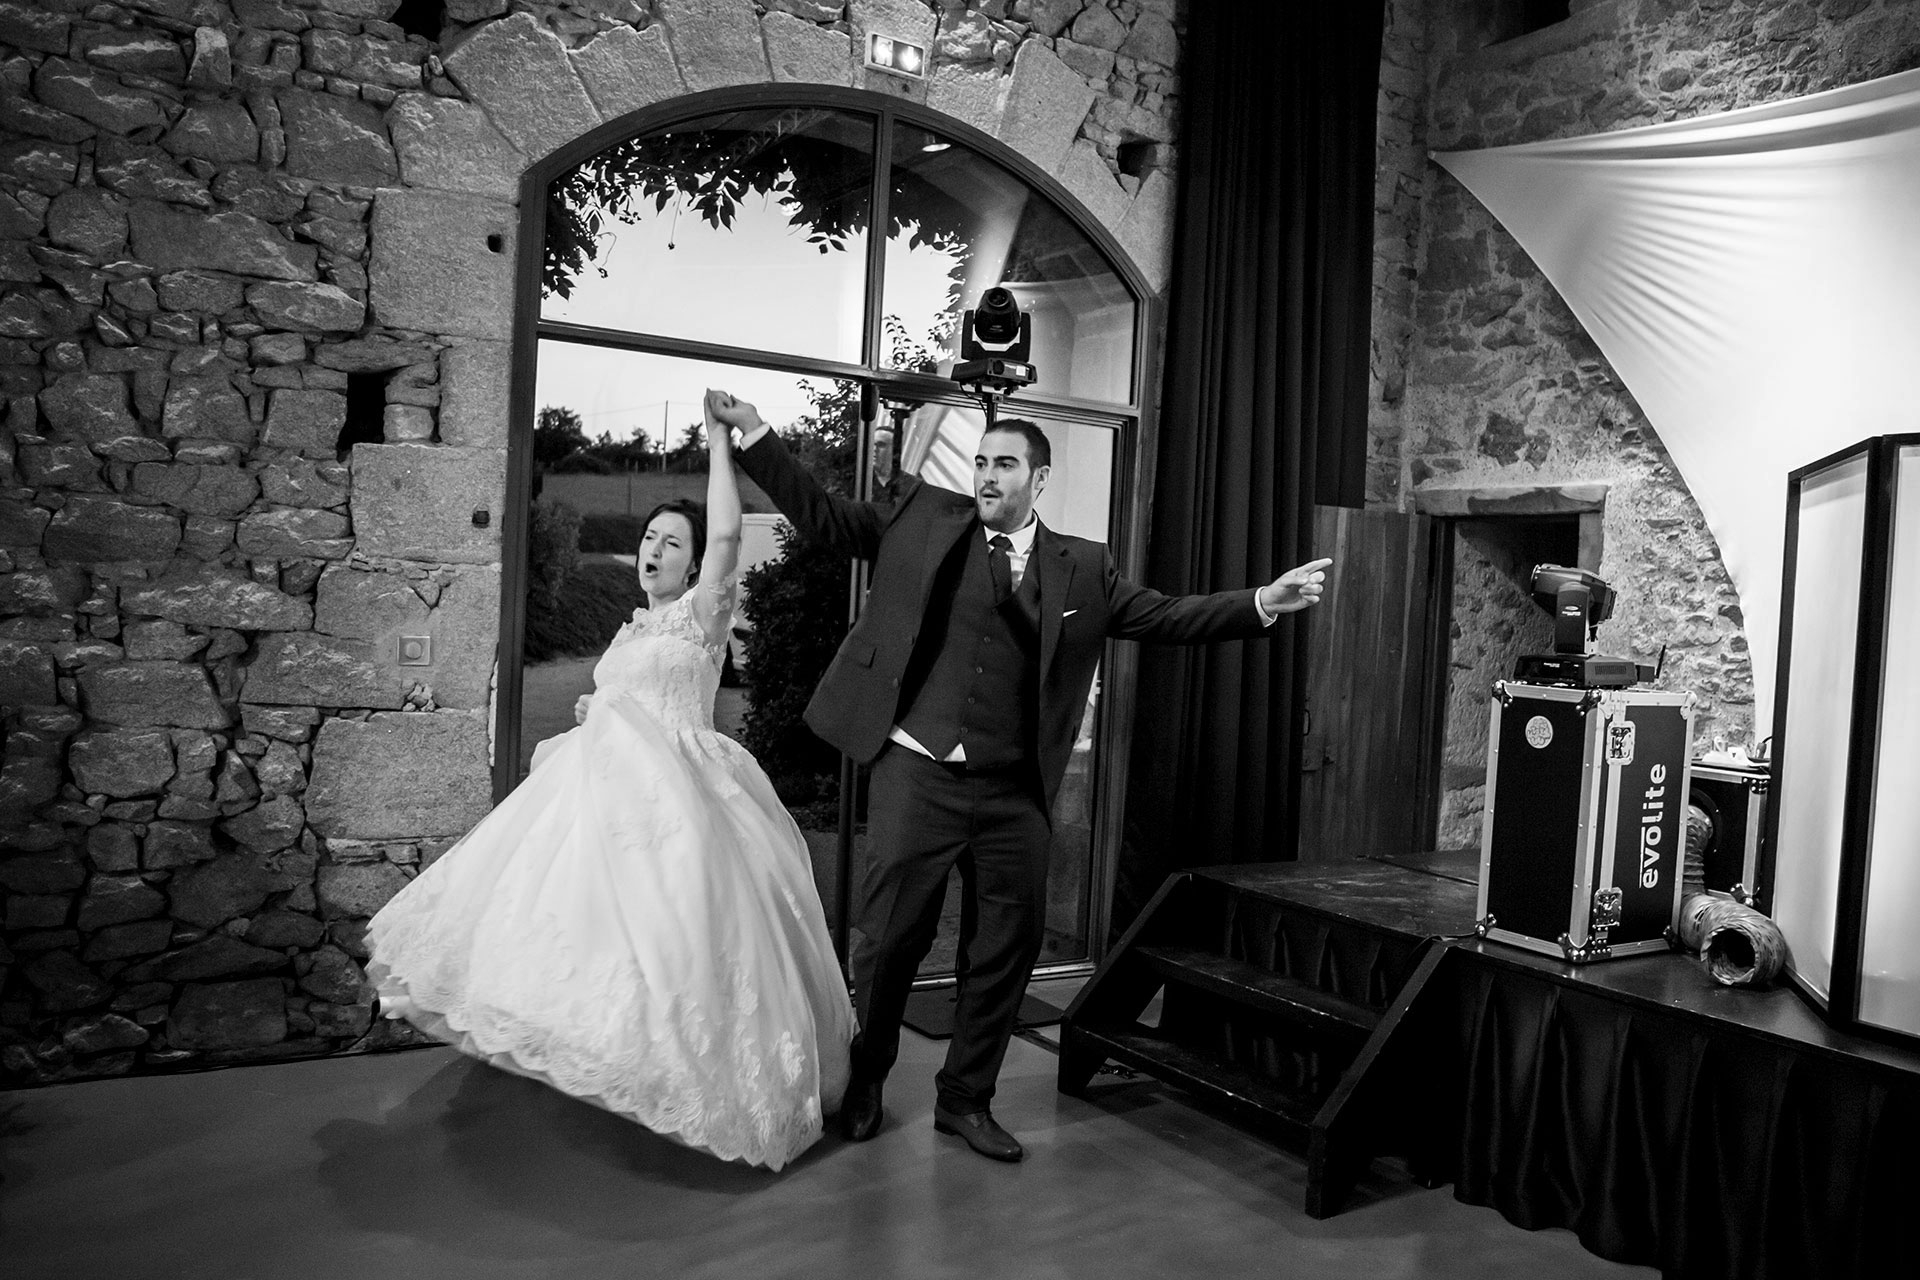 mariage-tiphaine-rudy-50